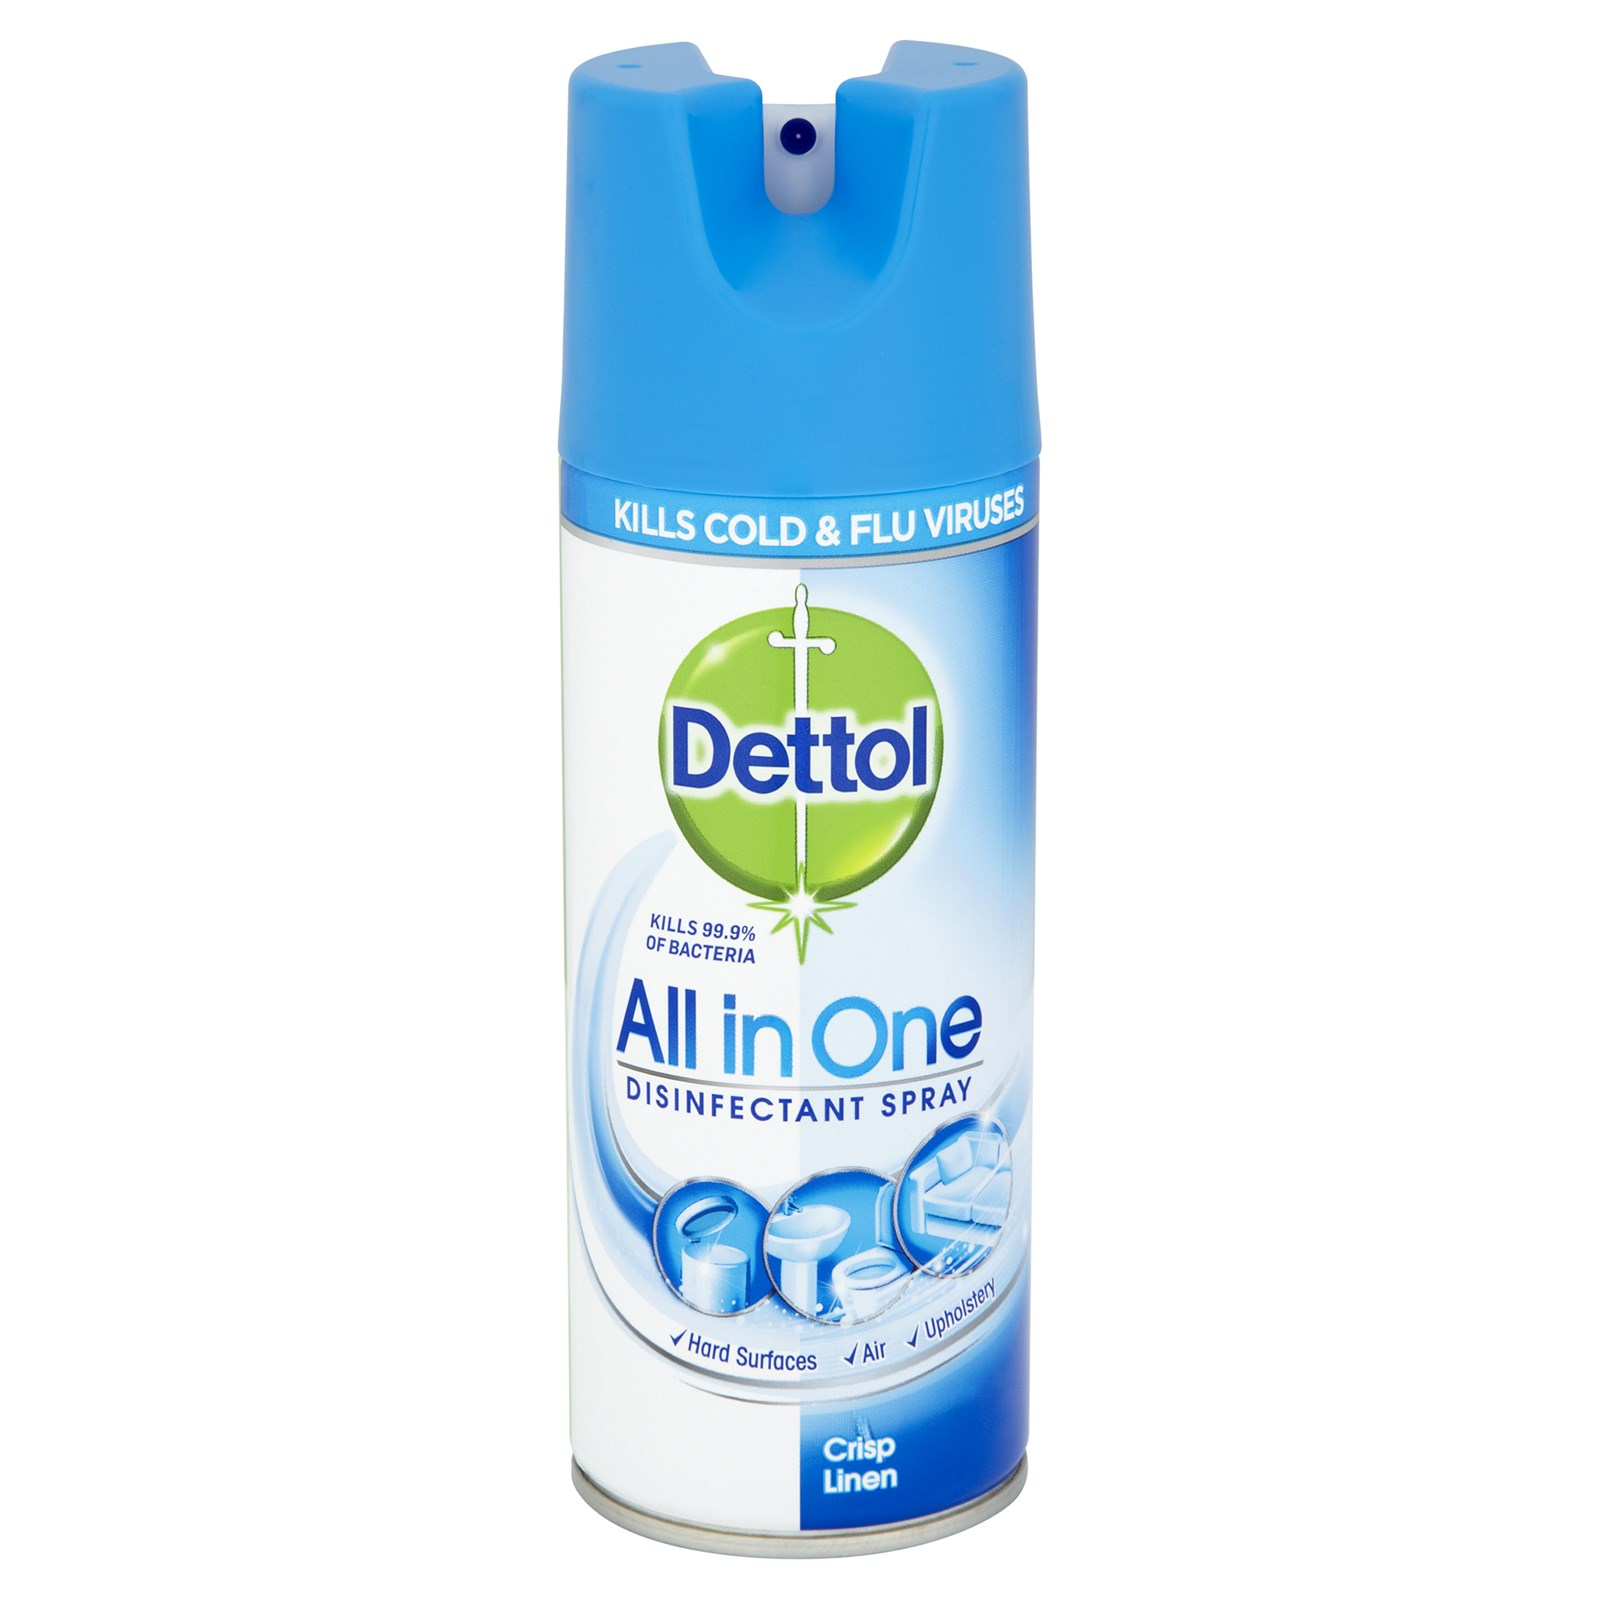 Dettol All in One Disinfectant Spray